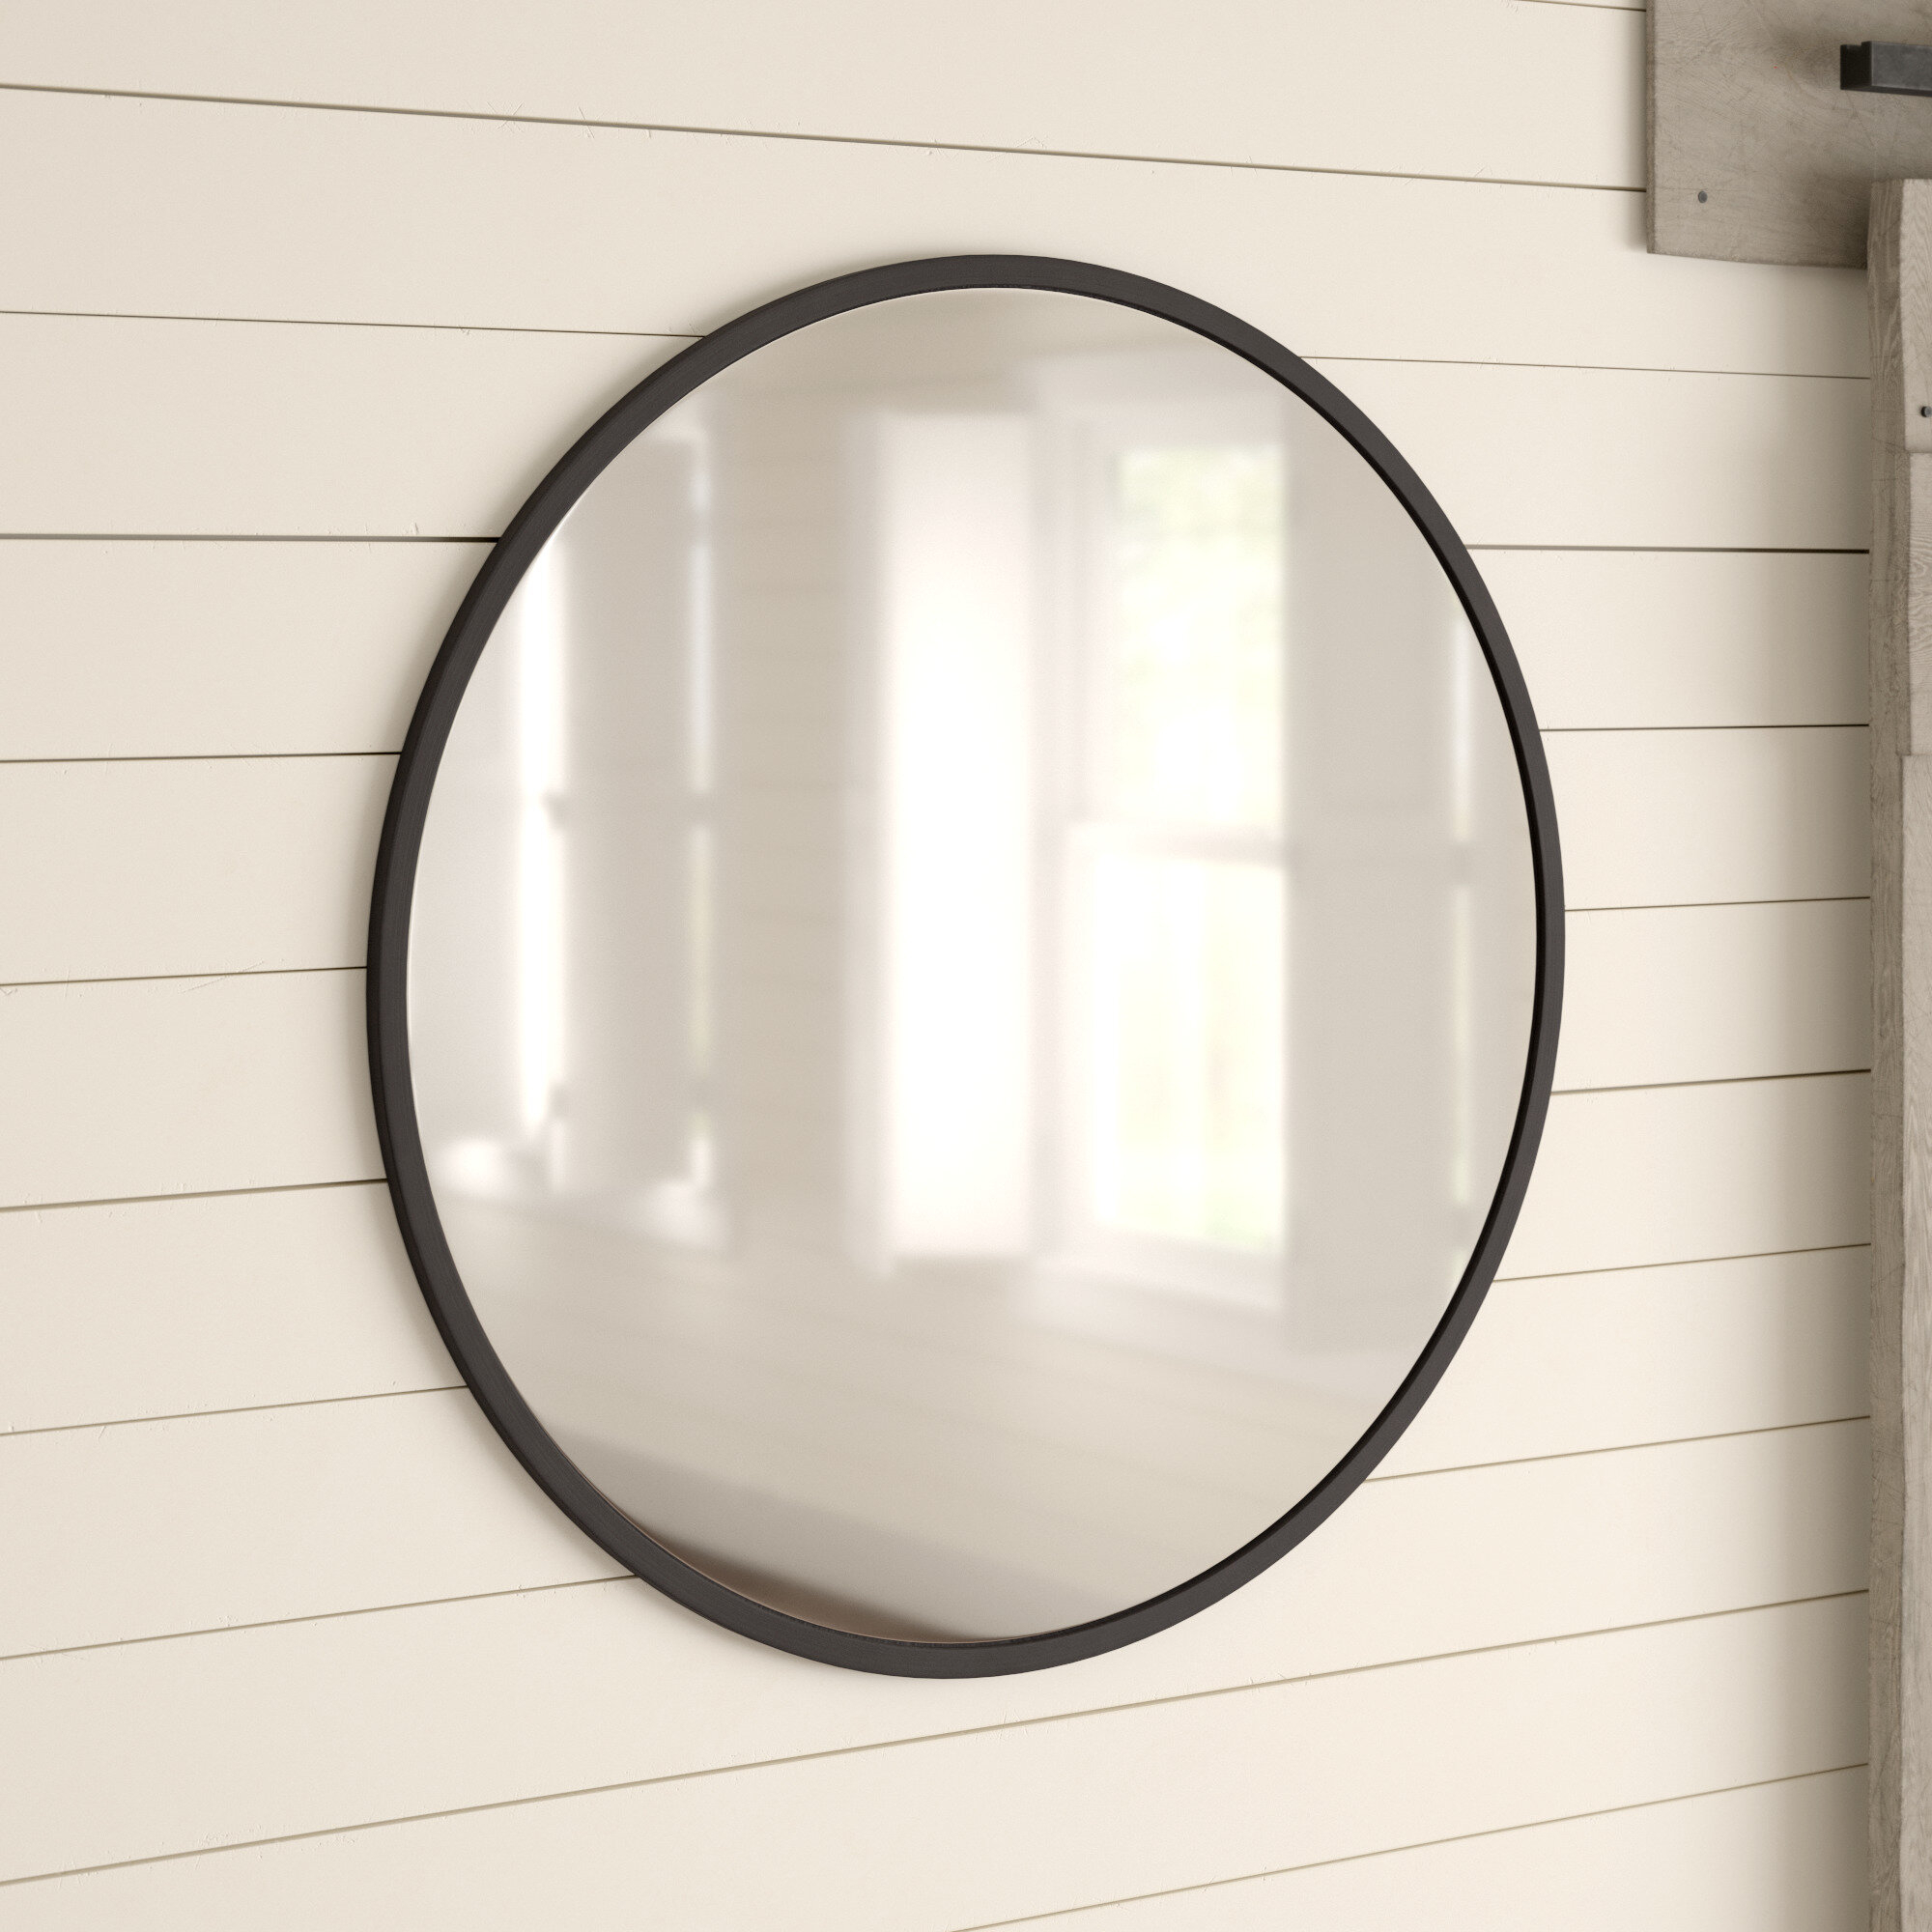 Hub Modern And Contemporary Accent Mirror Pertaining To Hub Modern And Contemporary Accent Mirrors (View 11 of 30)